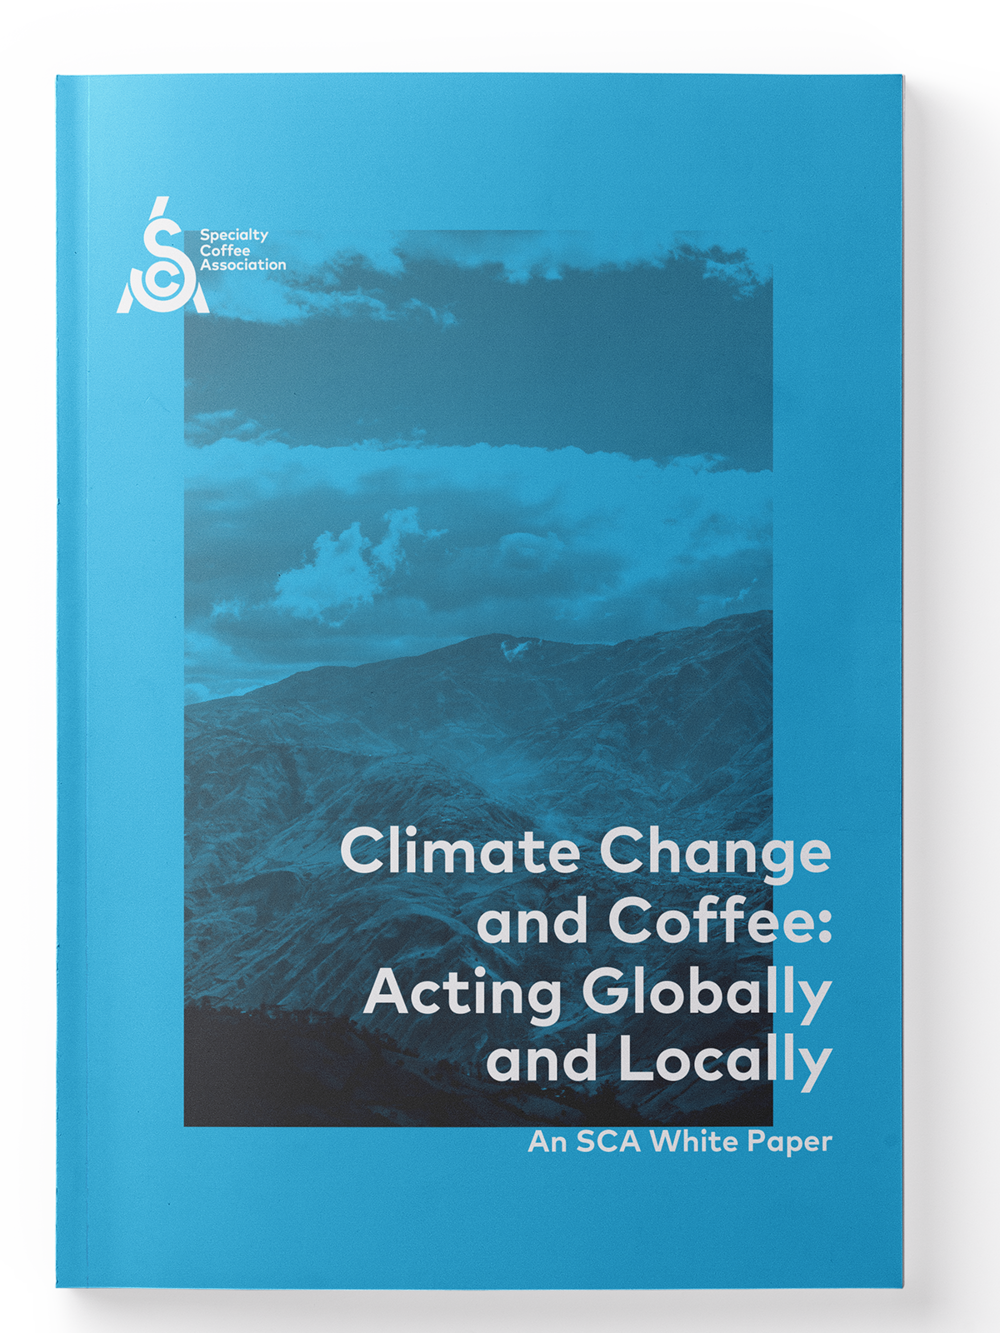 Climate Change and Coffee: Acting Globally and Locally   An SCA White Paper   This paper provides an overview of some potential impacts of climate change to the coffee value chain. It also examines some of the work being done by industry and community leaders in case studies on mitigation and adaptation strategies, and it makes recommendations for how all stakeholders in the industry can participate in building a more resilient coffee sector.   Download